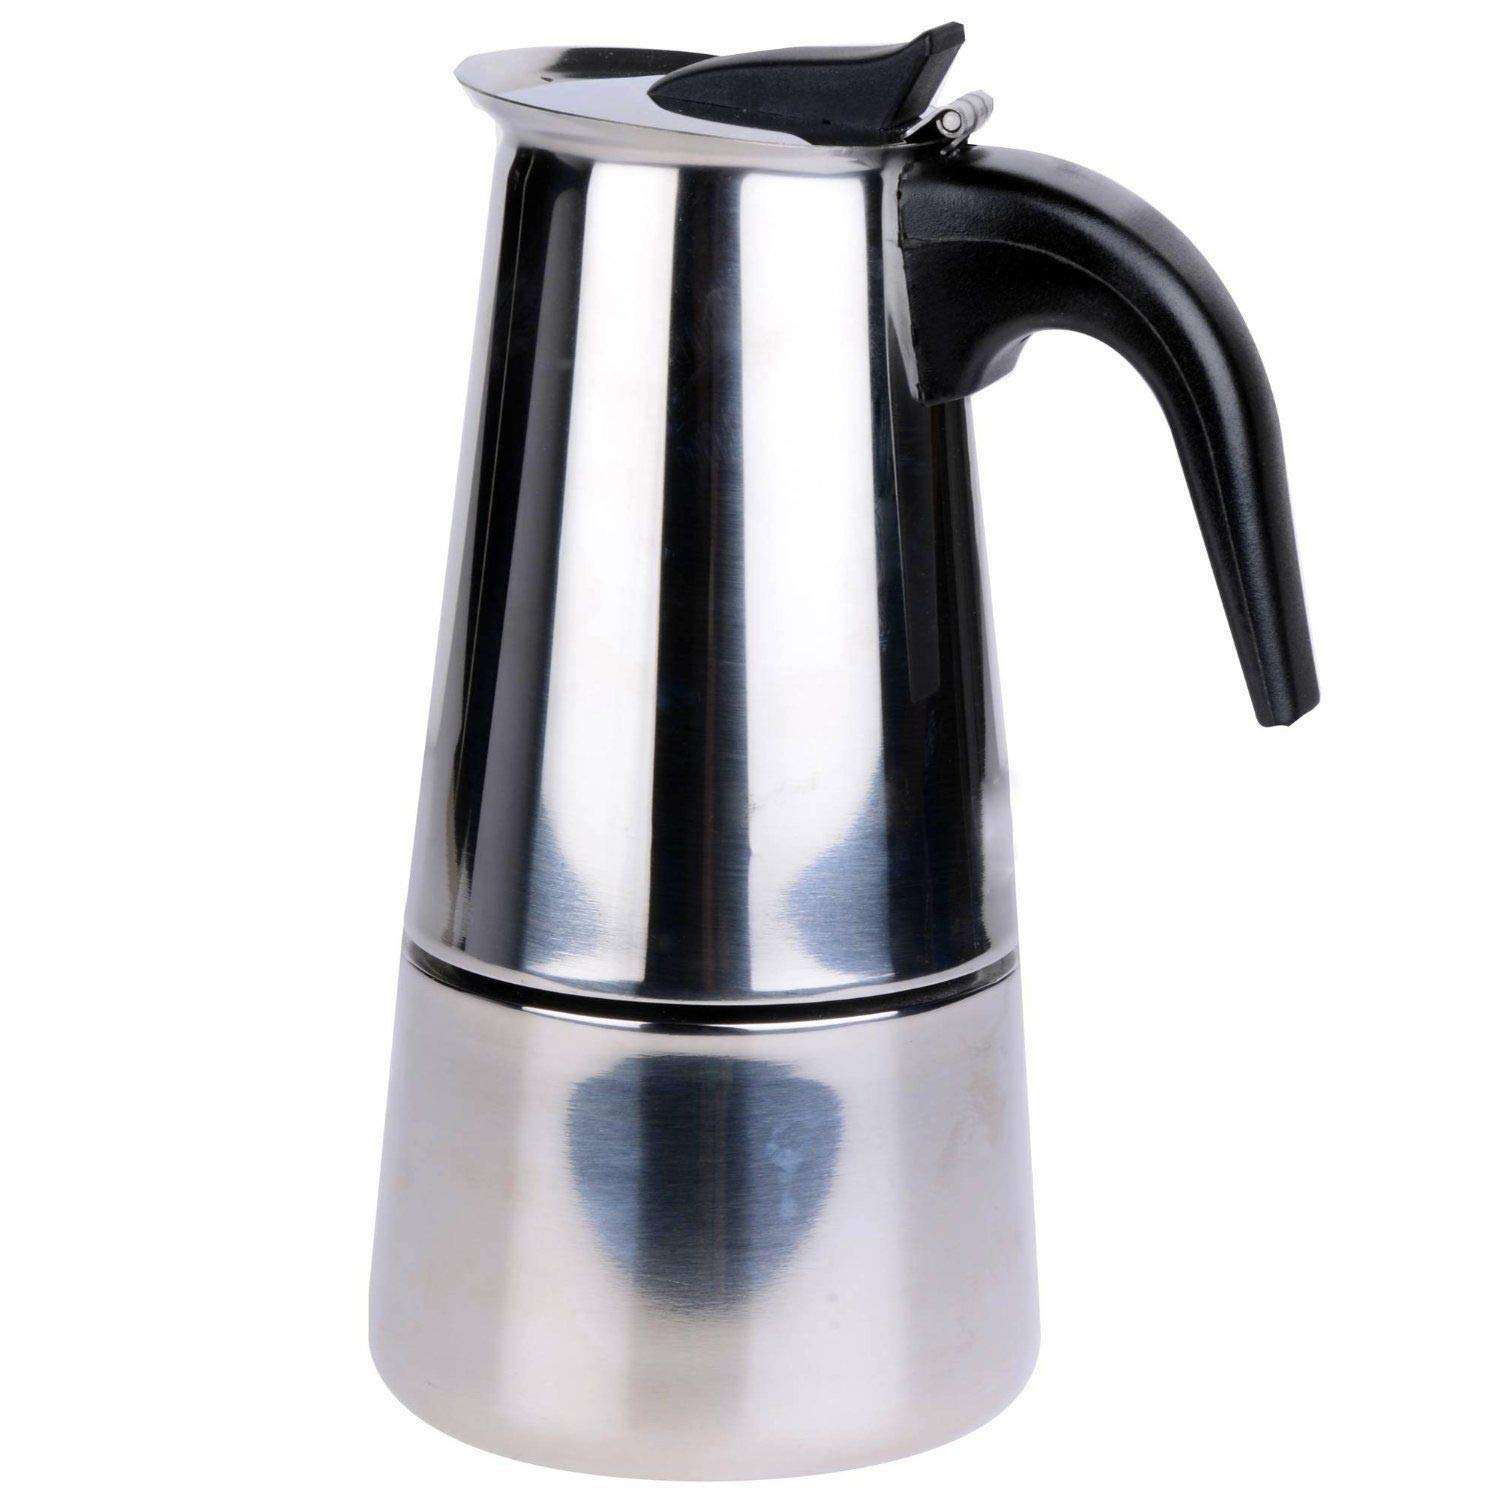 Voche Stove Top Percolator